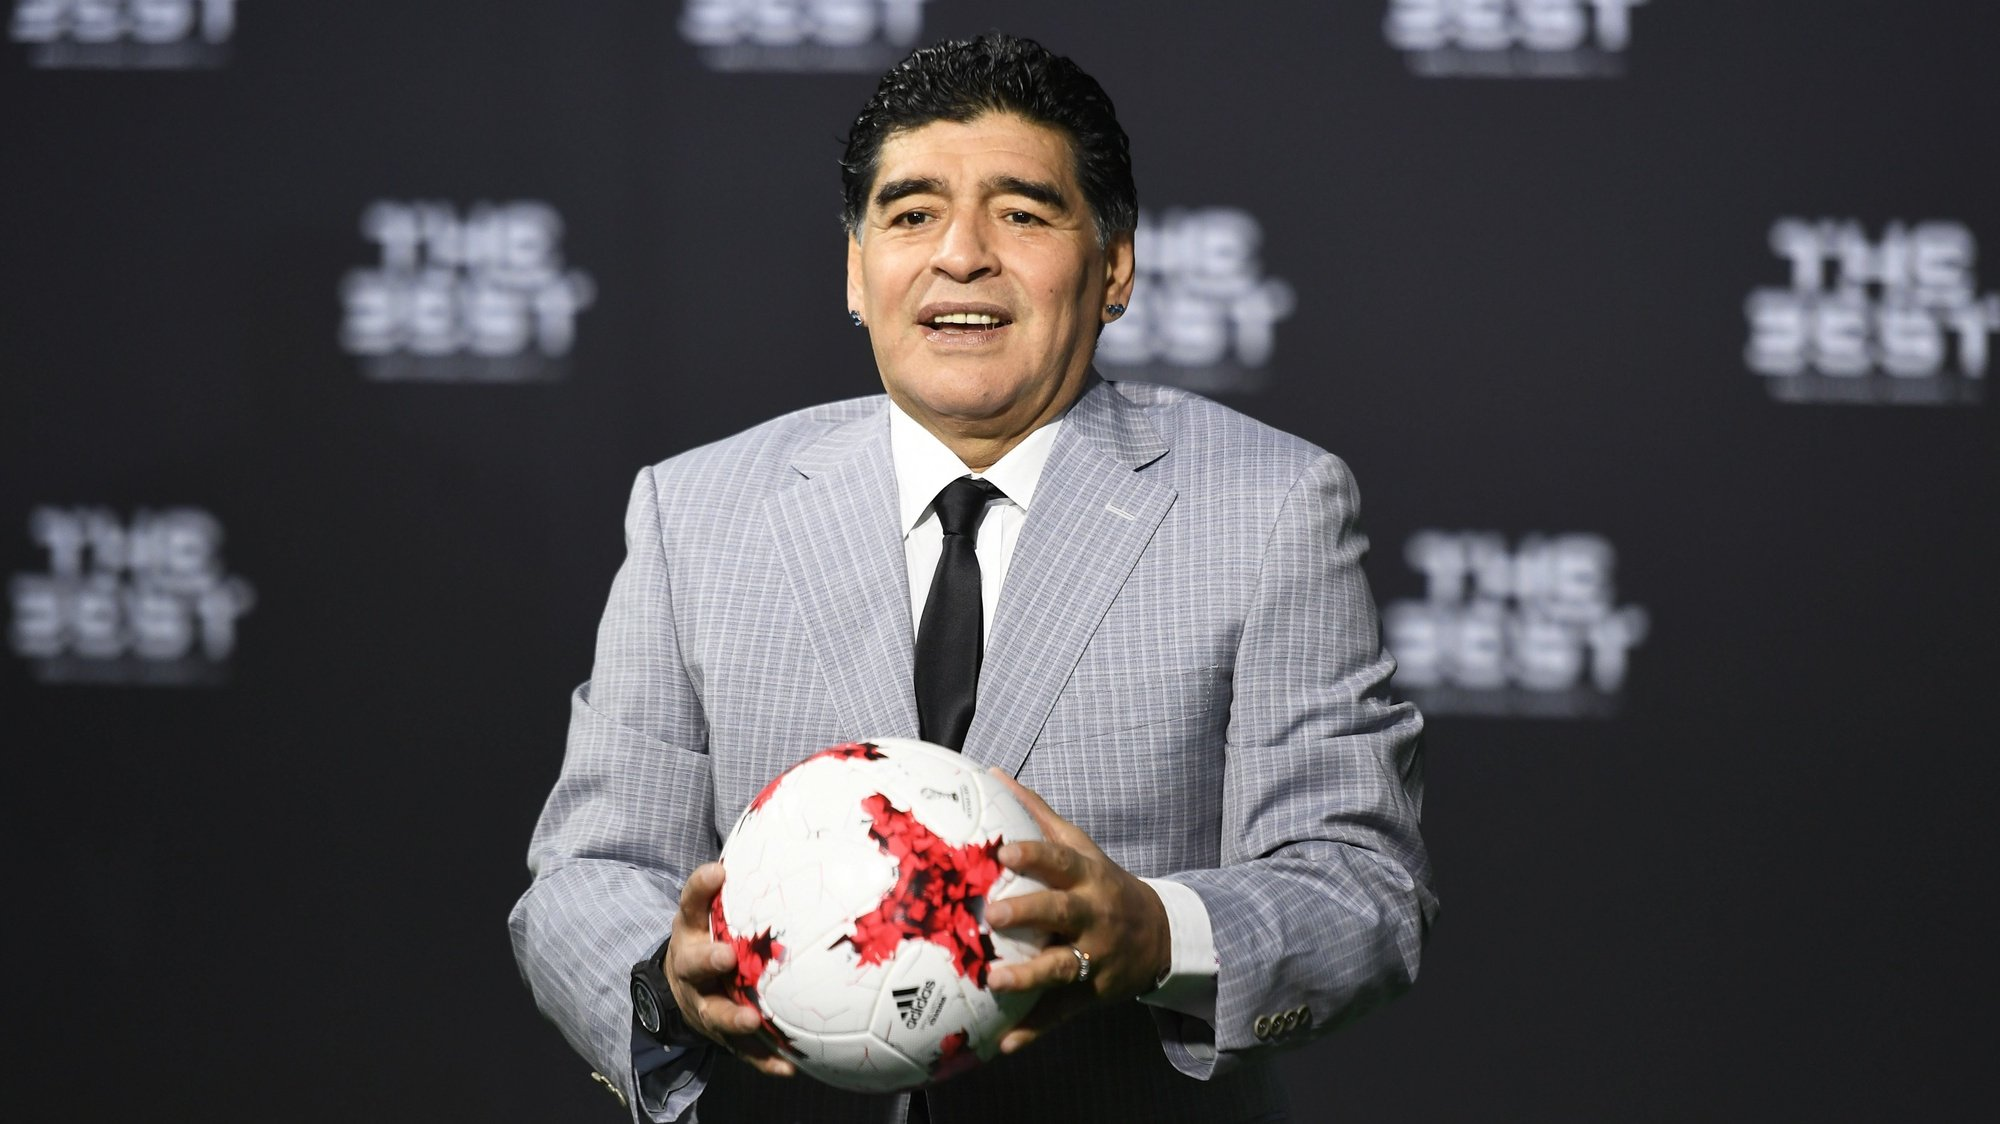 epa08841528 (FILE) - Argentinian soccer legend Diego Armando Maradona poses for photographers as he arrives prior to the FIFA Awards 2016 gala at the Swiss TV studio in Zurich, Switzerland, 09 January 2017 (re-issued on 25 November 2020). Diego Maradona has died after a heart attack, media reports claimed on 25 November 2020.  EPA/WALTER BIERI *** Local Caption *** 53218238